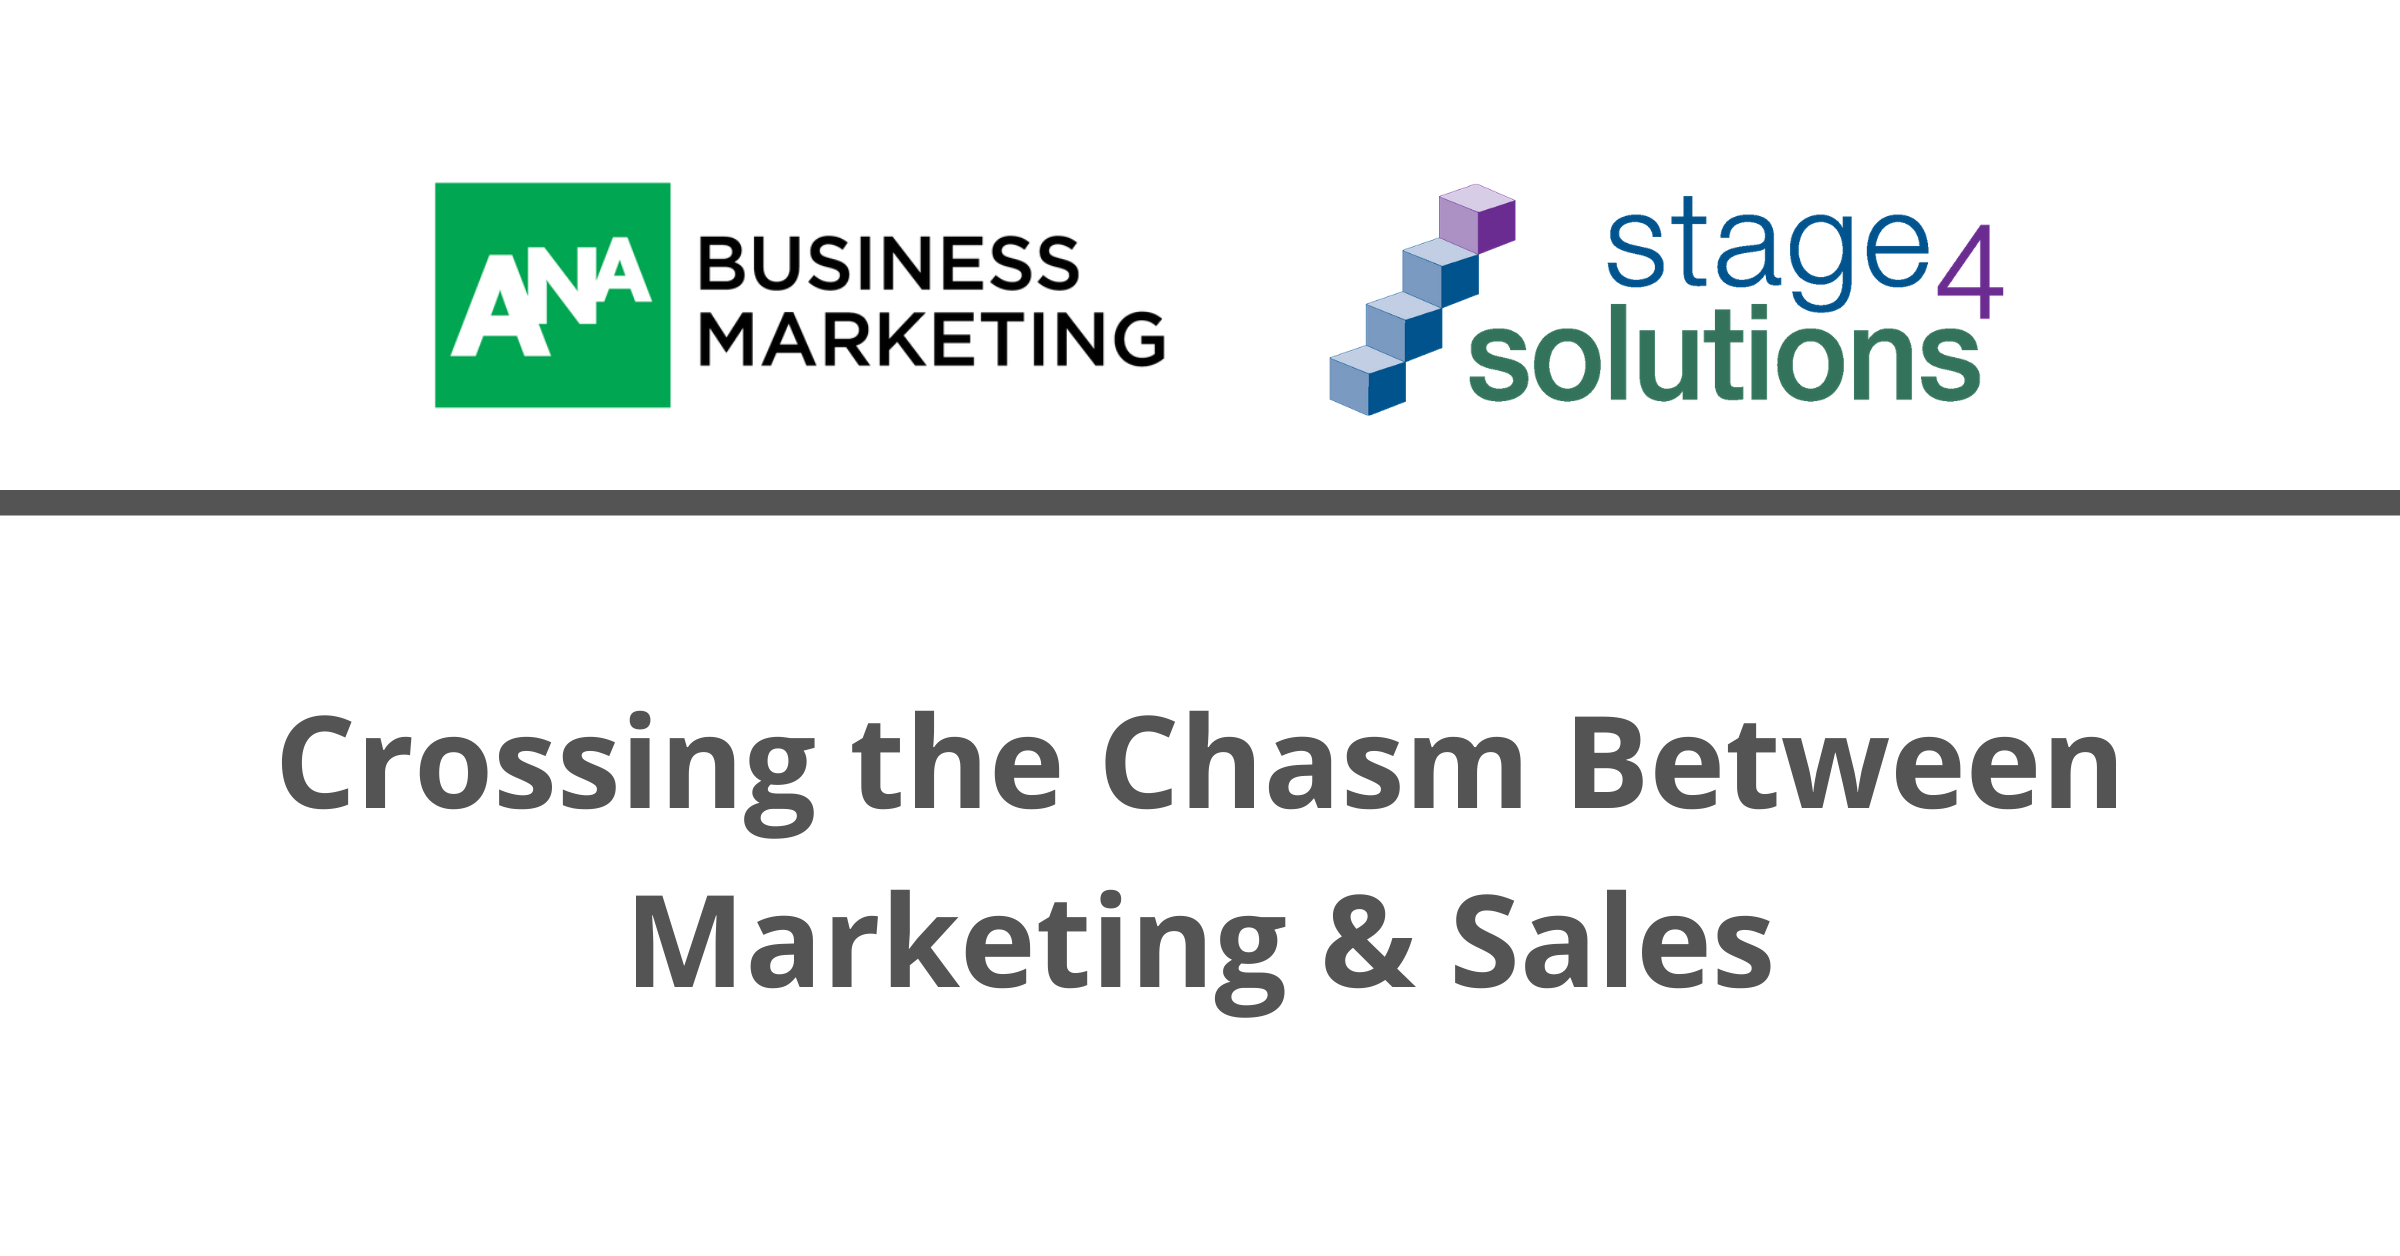 Crossing the Chasm between Marketing & Sales